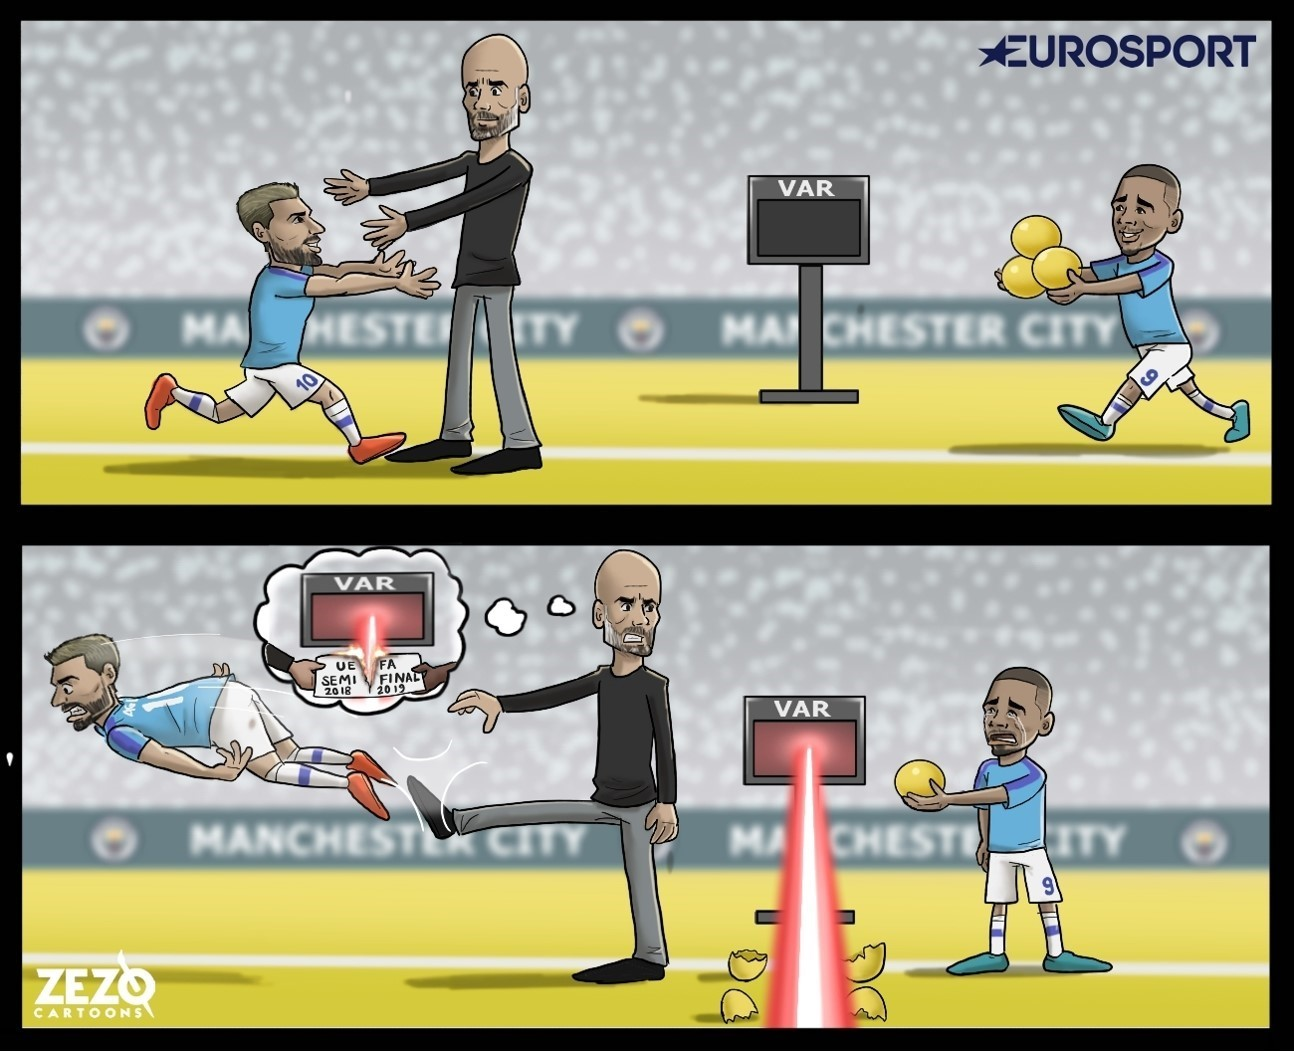 Cartoon of Manchester City v Tottenham Hotspur